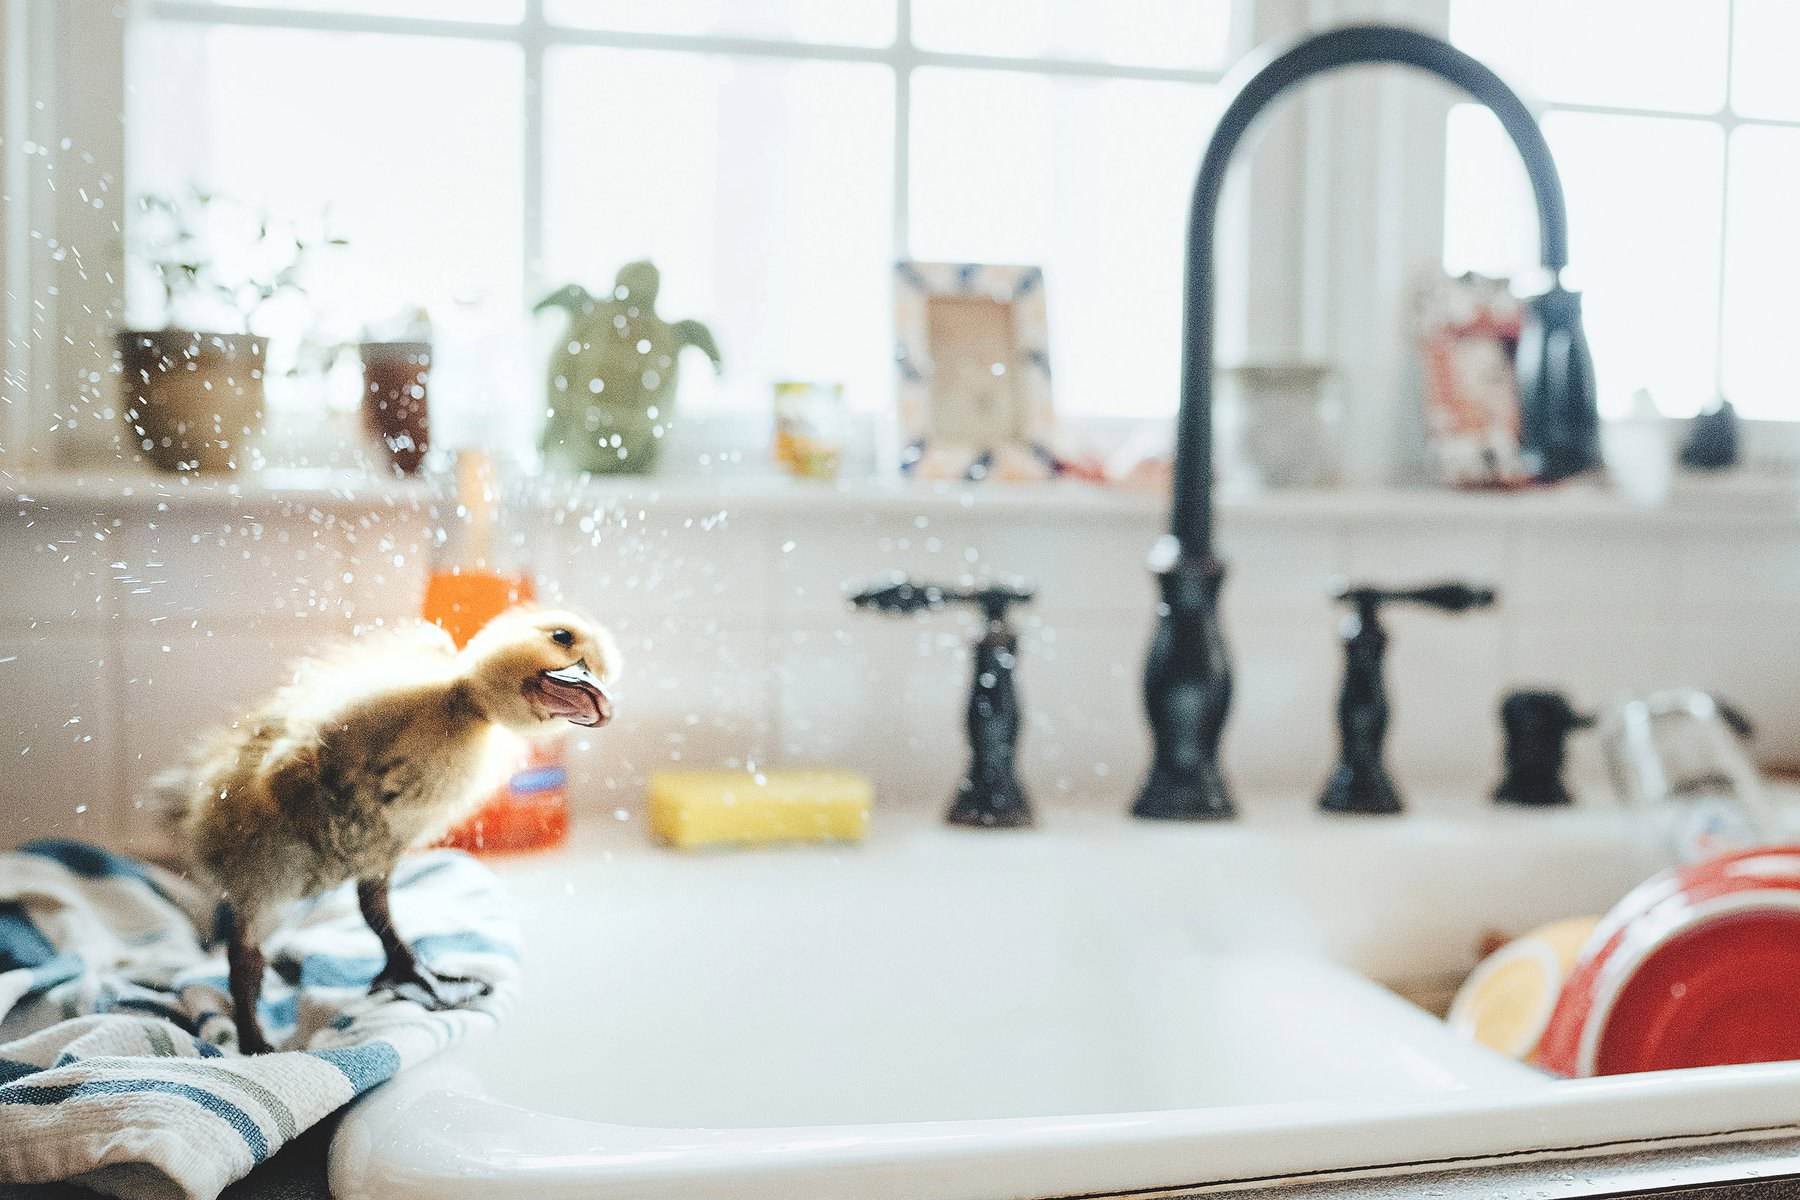 a duck shakes itself dry after bathing in a sink